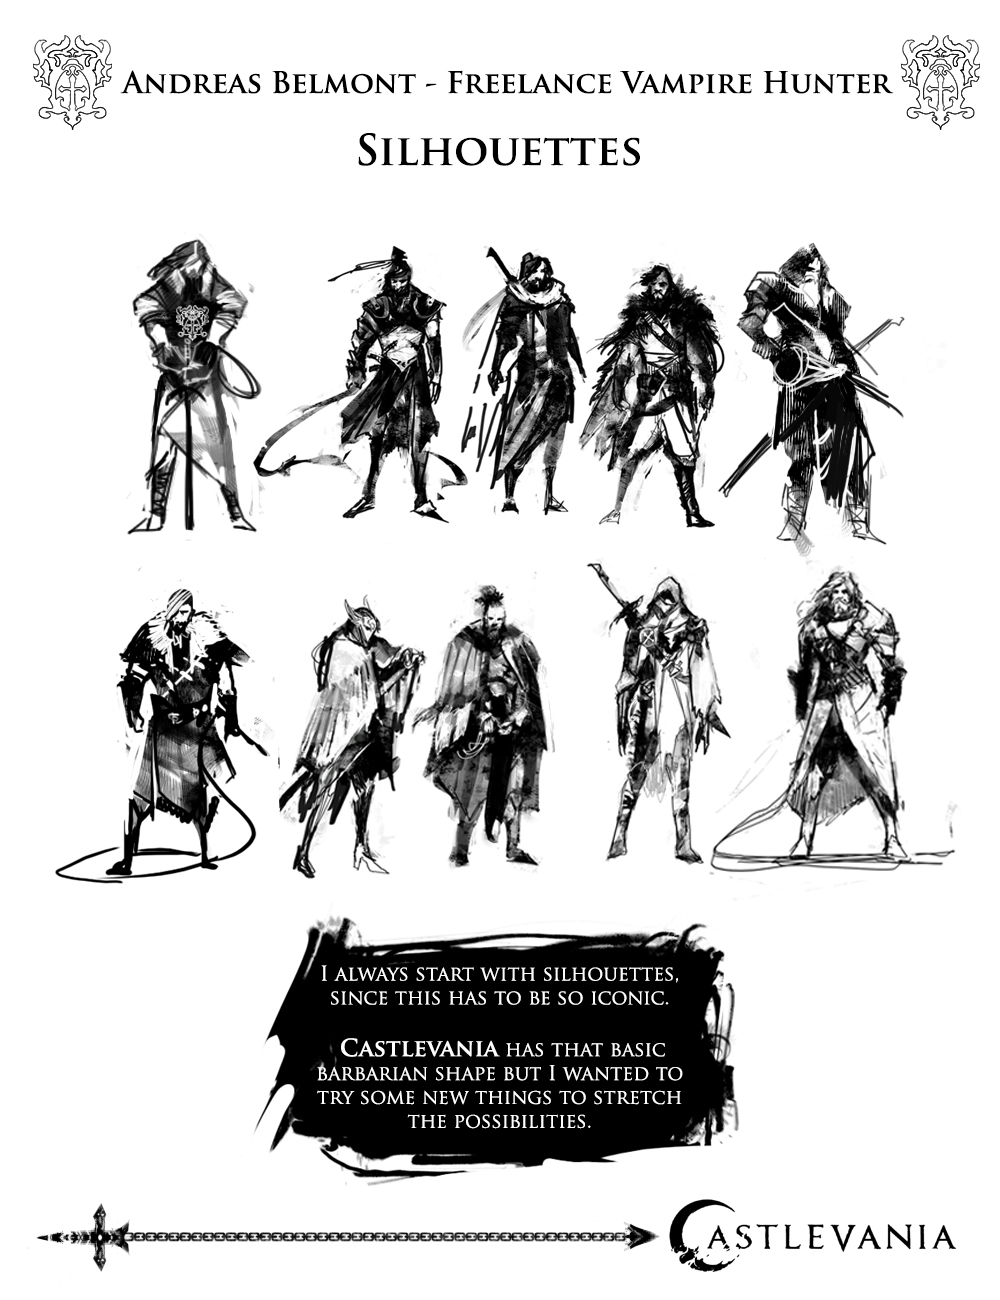 Test for Power House as a Character Designer - PHASE 1 - SKETCHES/SILLOUETTES